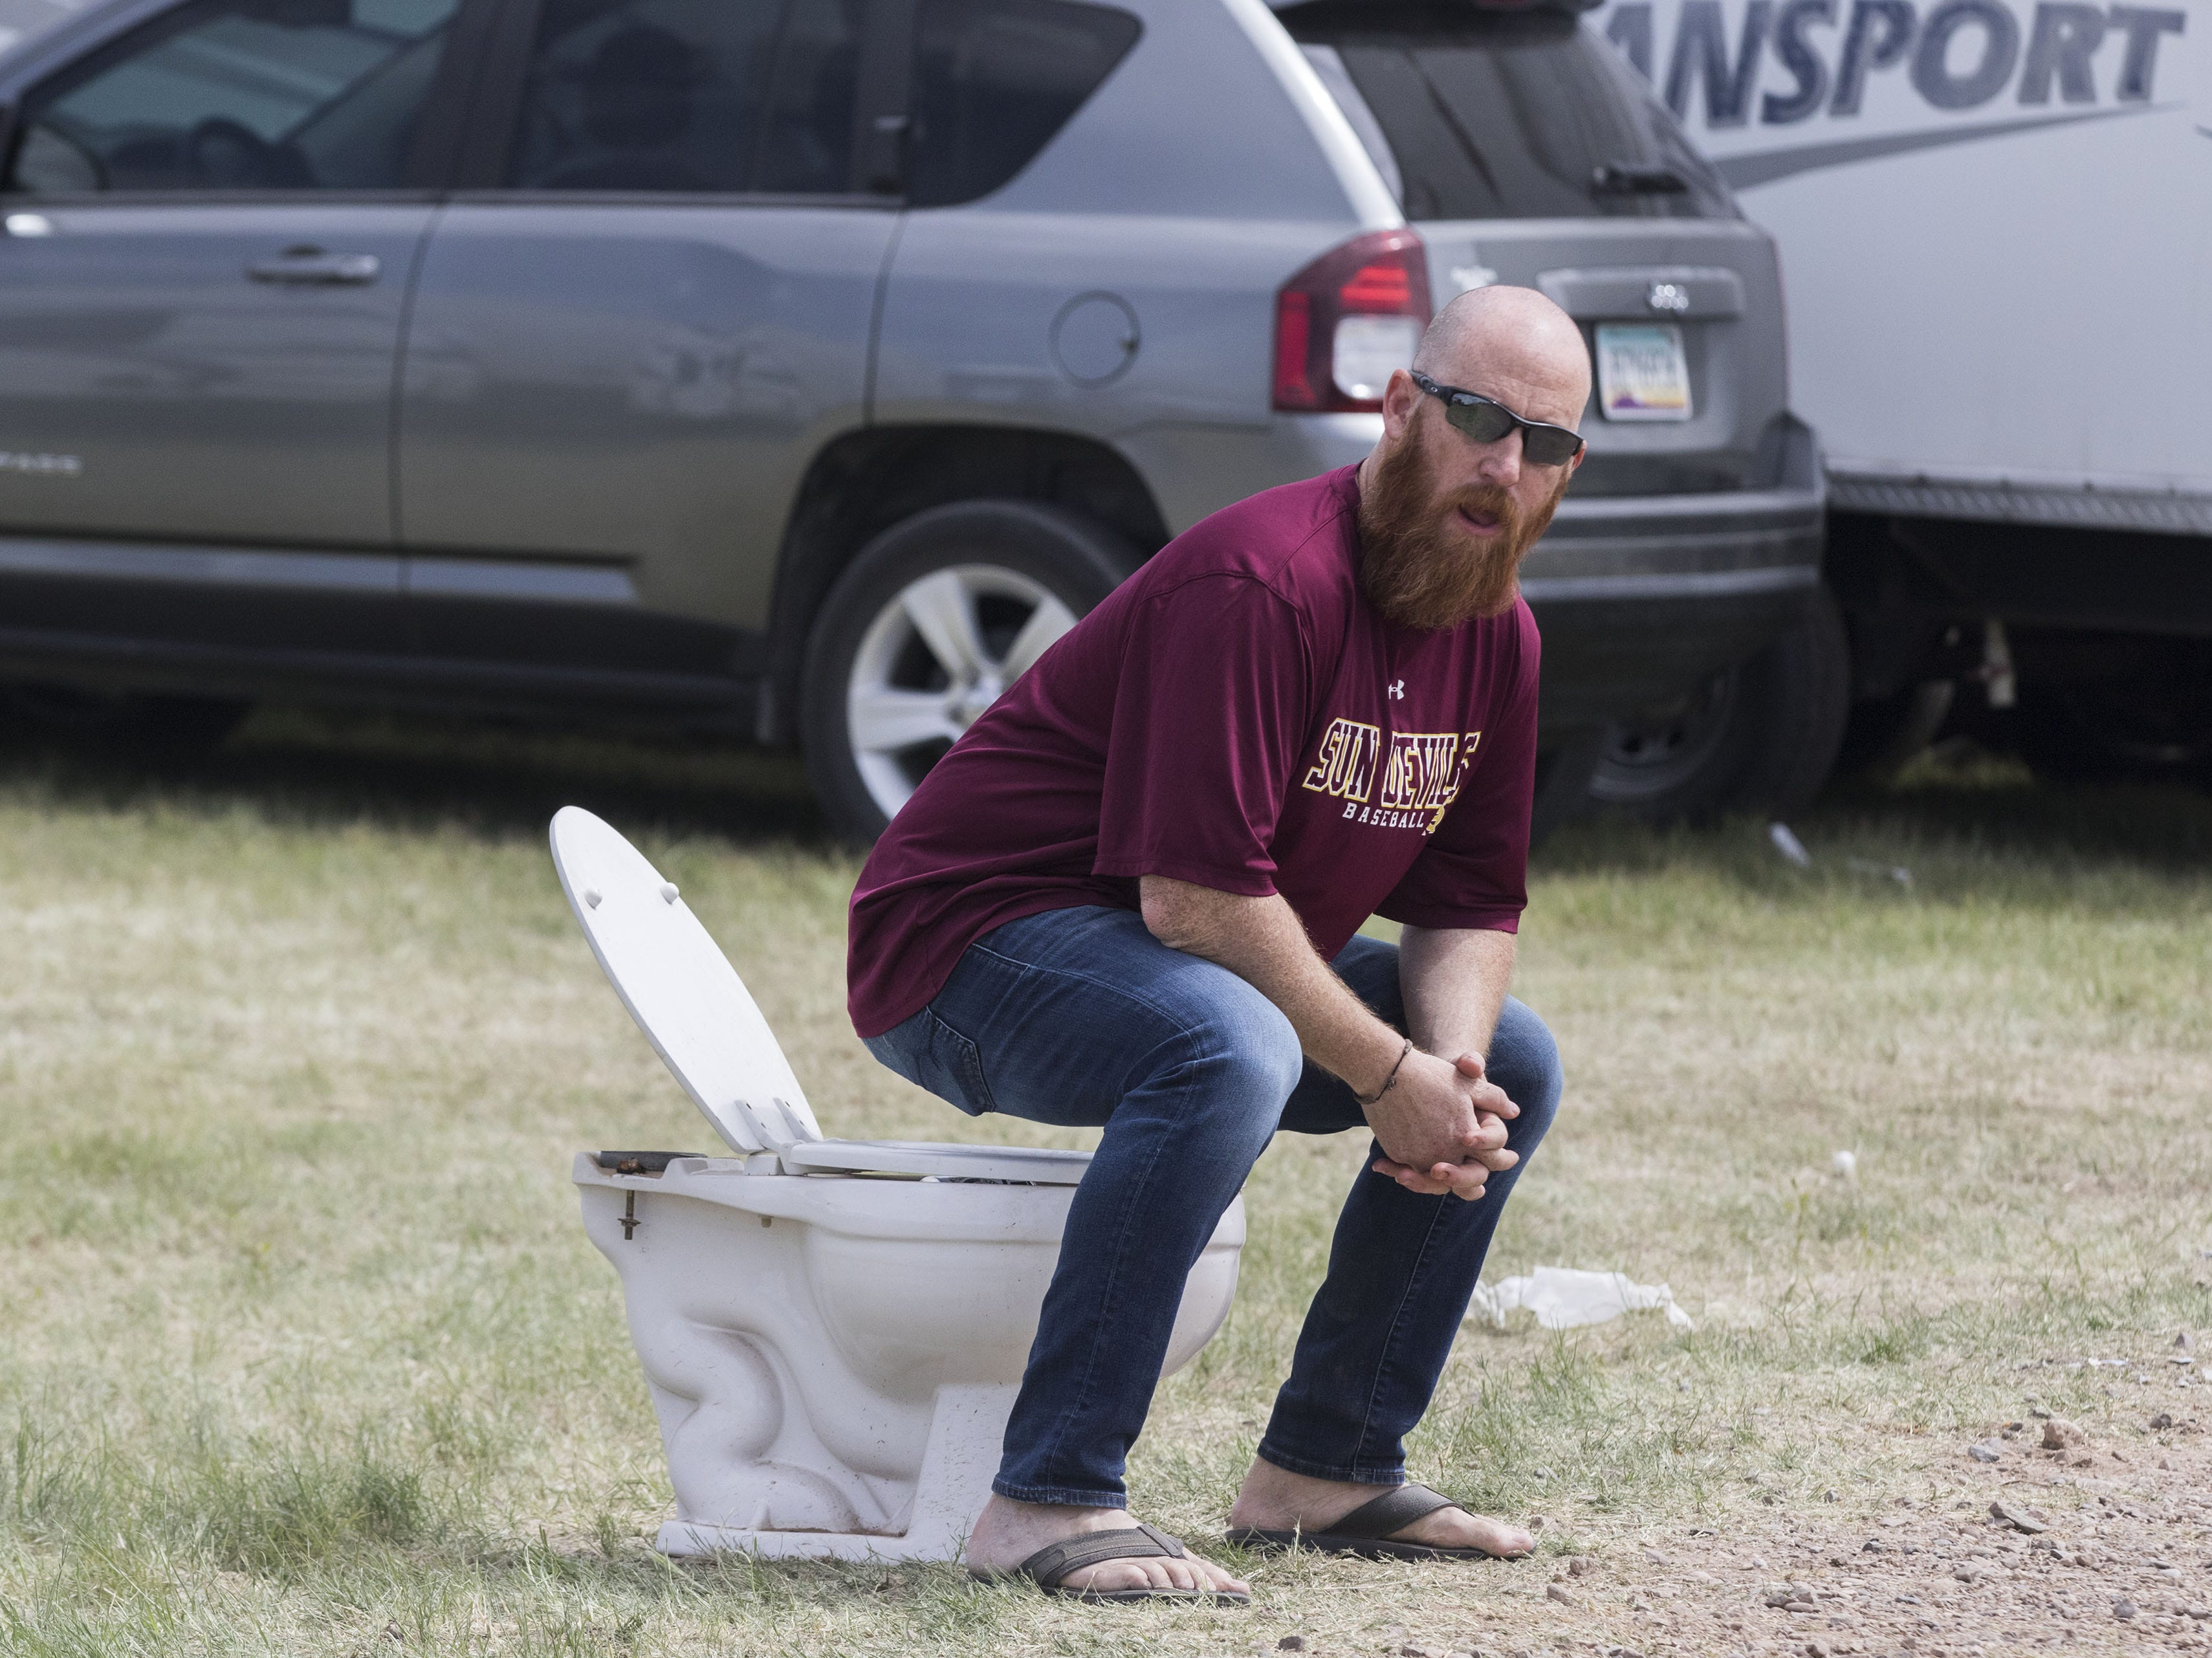 Jason Marinol of Tempe says his toliet is one of the most photographed things out at Country Thunder Arizona Friday, April 12, 2019, in Florence, Arizona.  Marinol said people are always stopping and taking photos his toilet filled with beer cans.